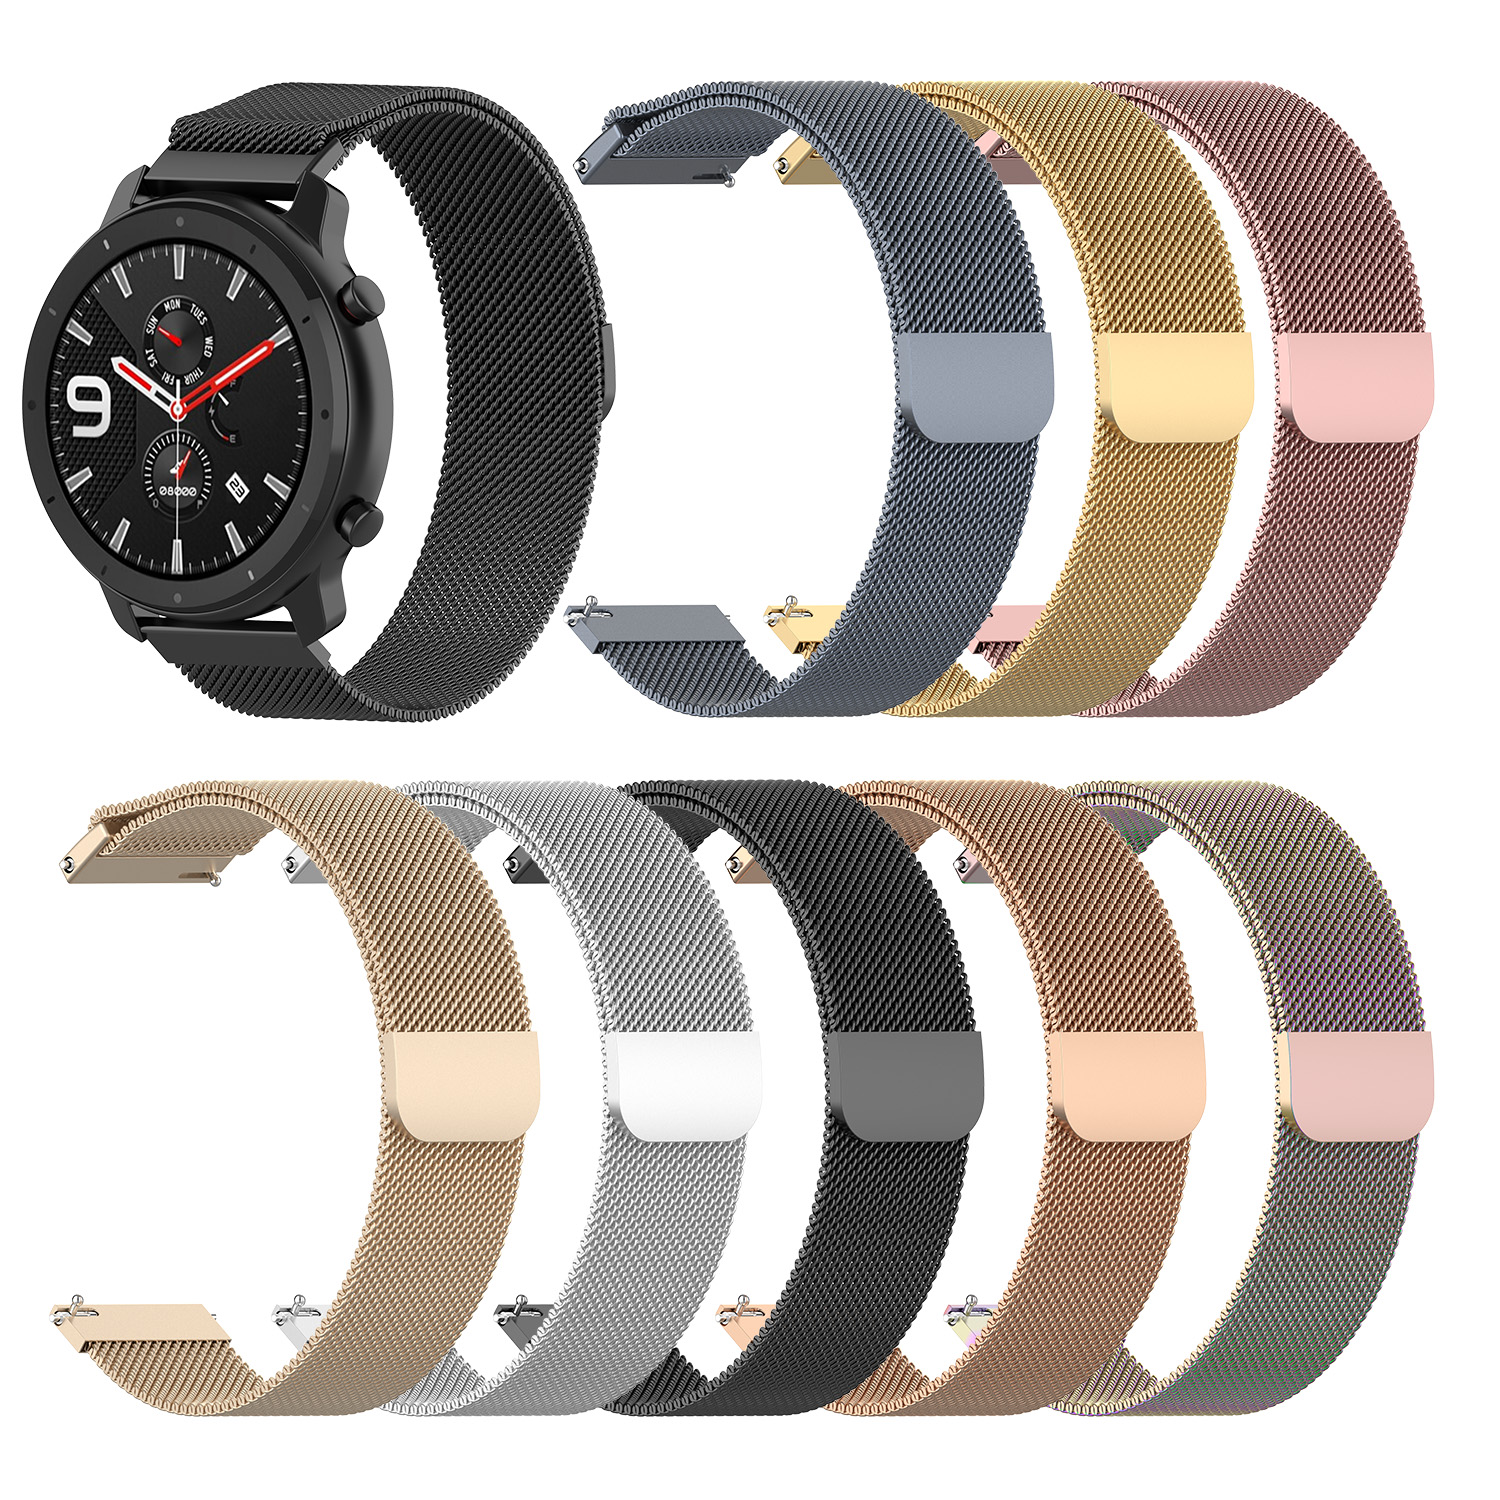 For Huami Amazfit GTR 47mm Smart Watch Steel Belt Milan Loop Magnetic Watch Strap 22mm Width For LG W100 For ZTE For Samsung